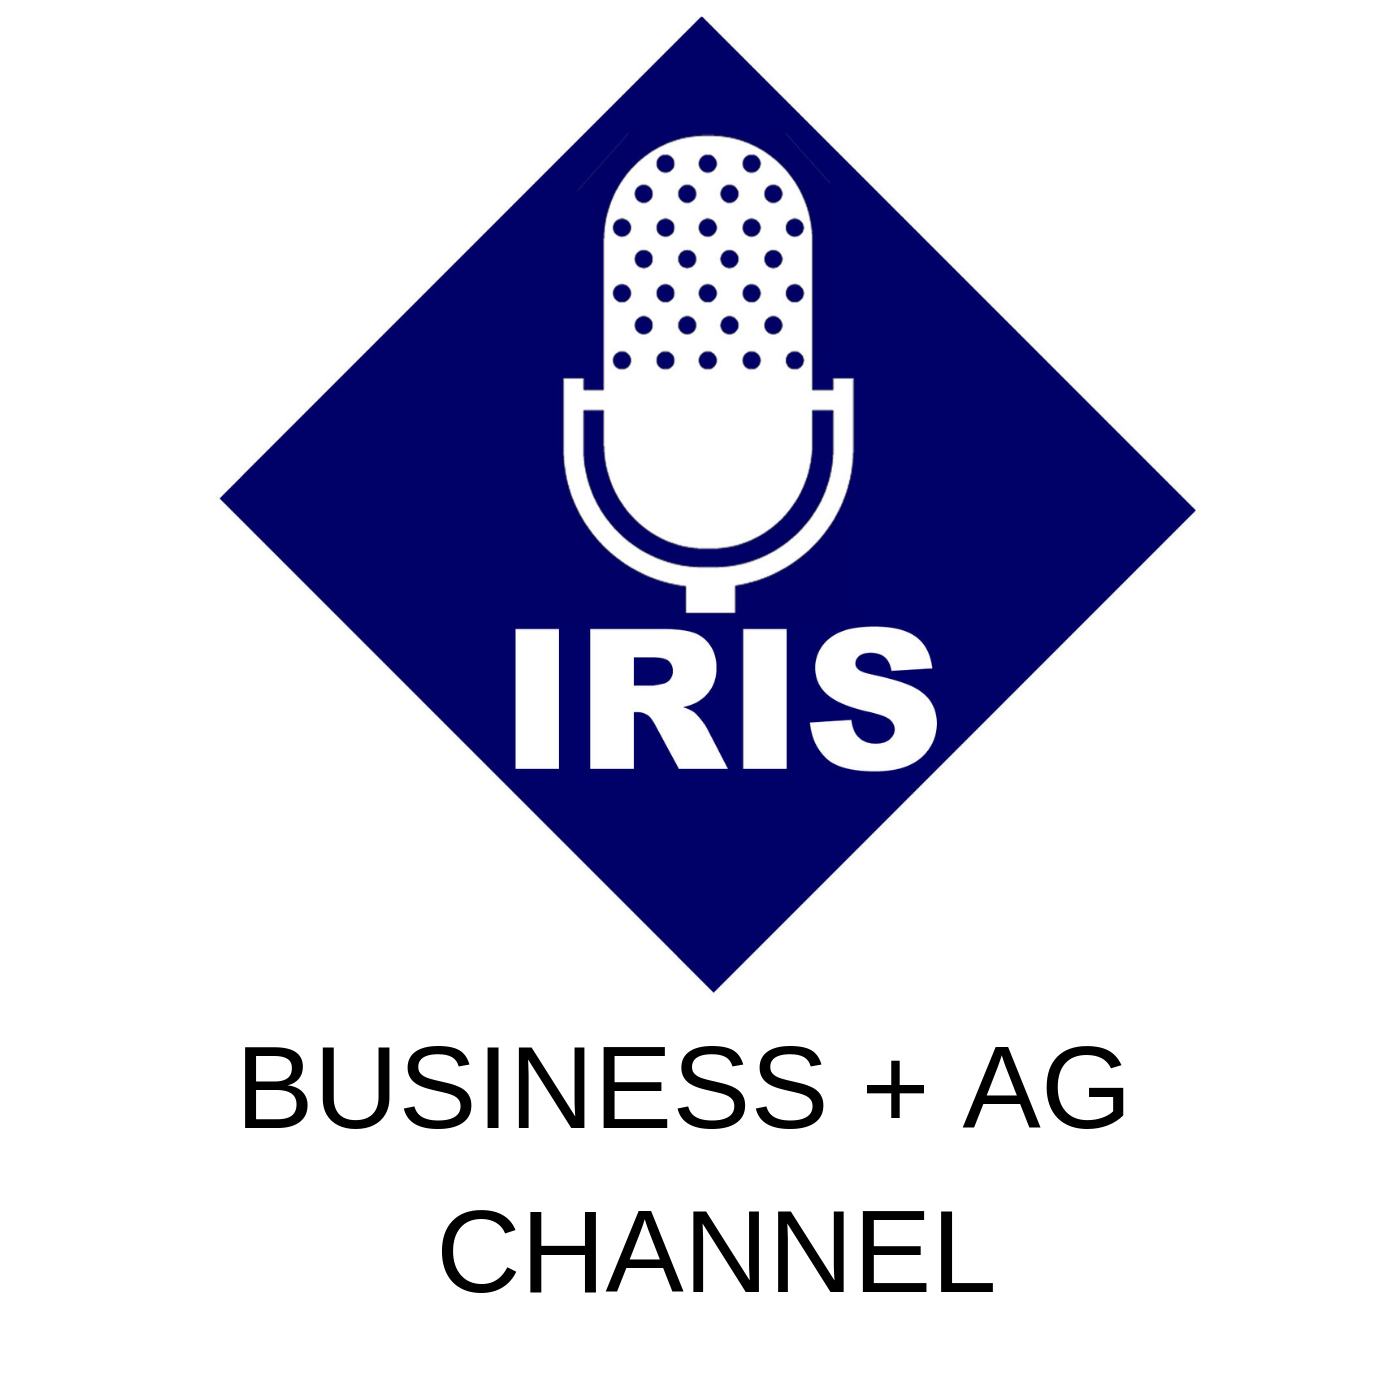 IRIS: Business & Ag